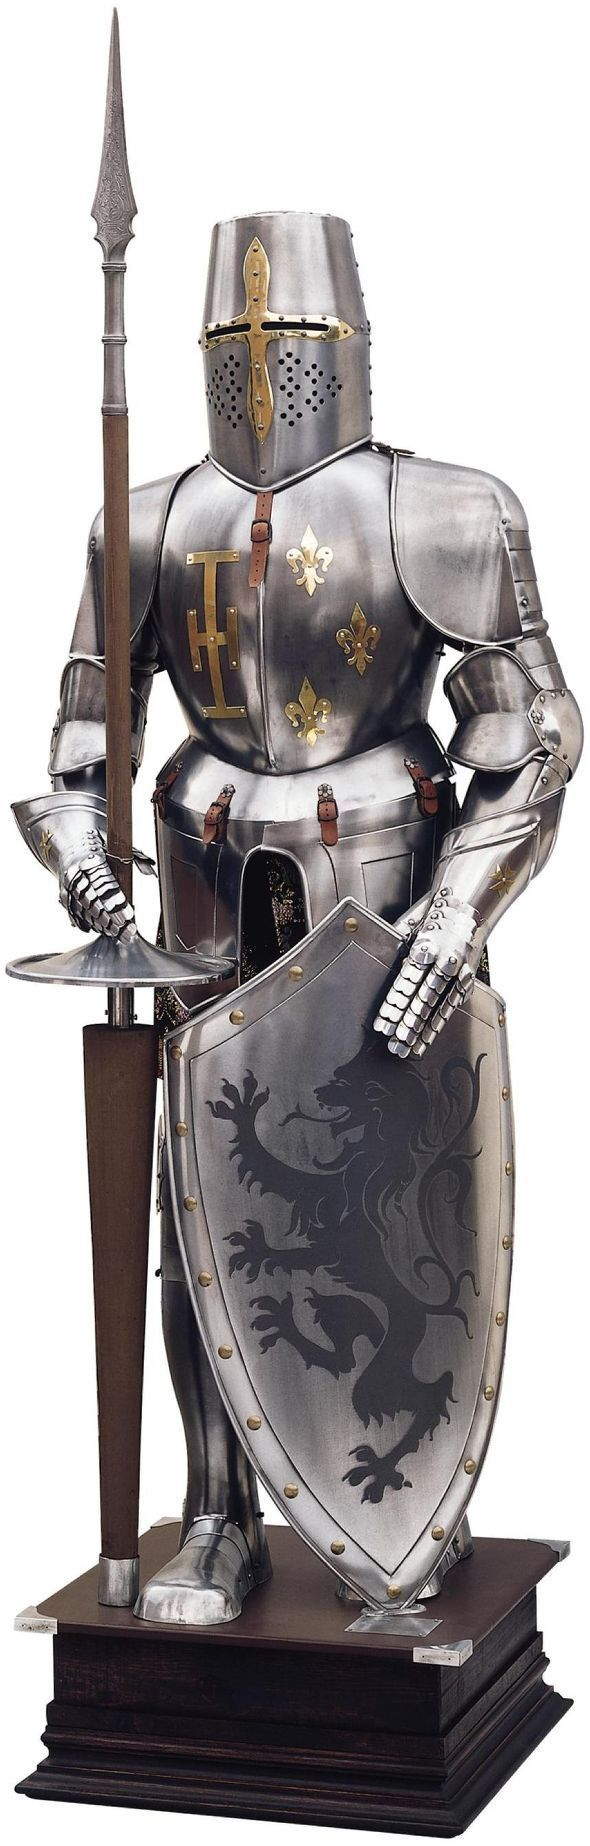 Image detail for -formal would be with sword and shield ... Medieval Knights Armor